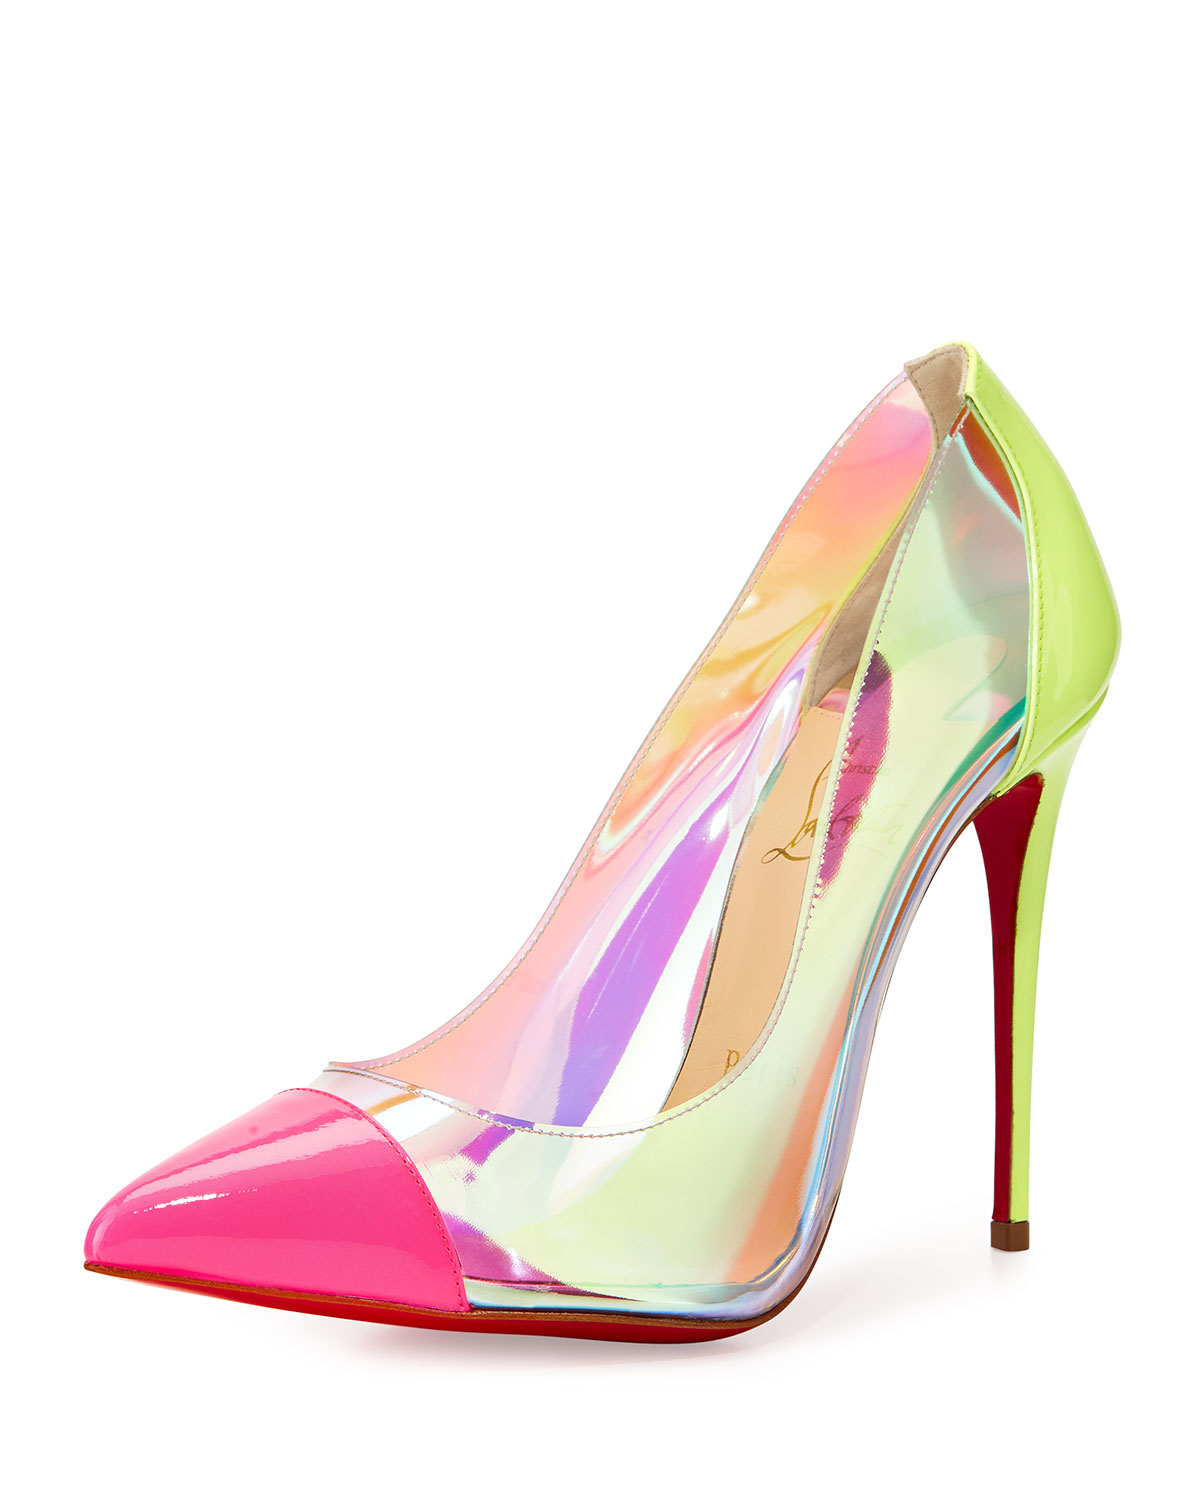 Nordstrom Shoes Women Louboutin